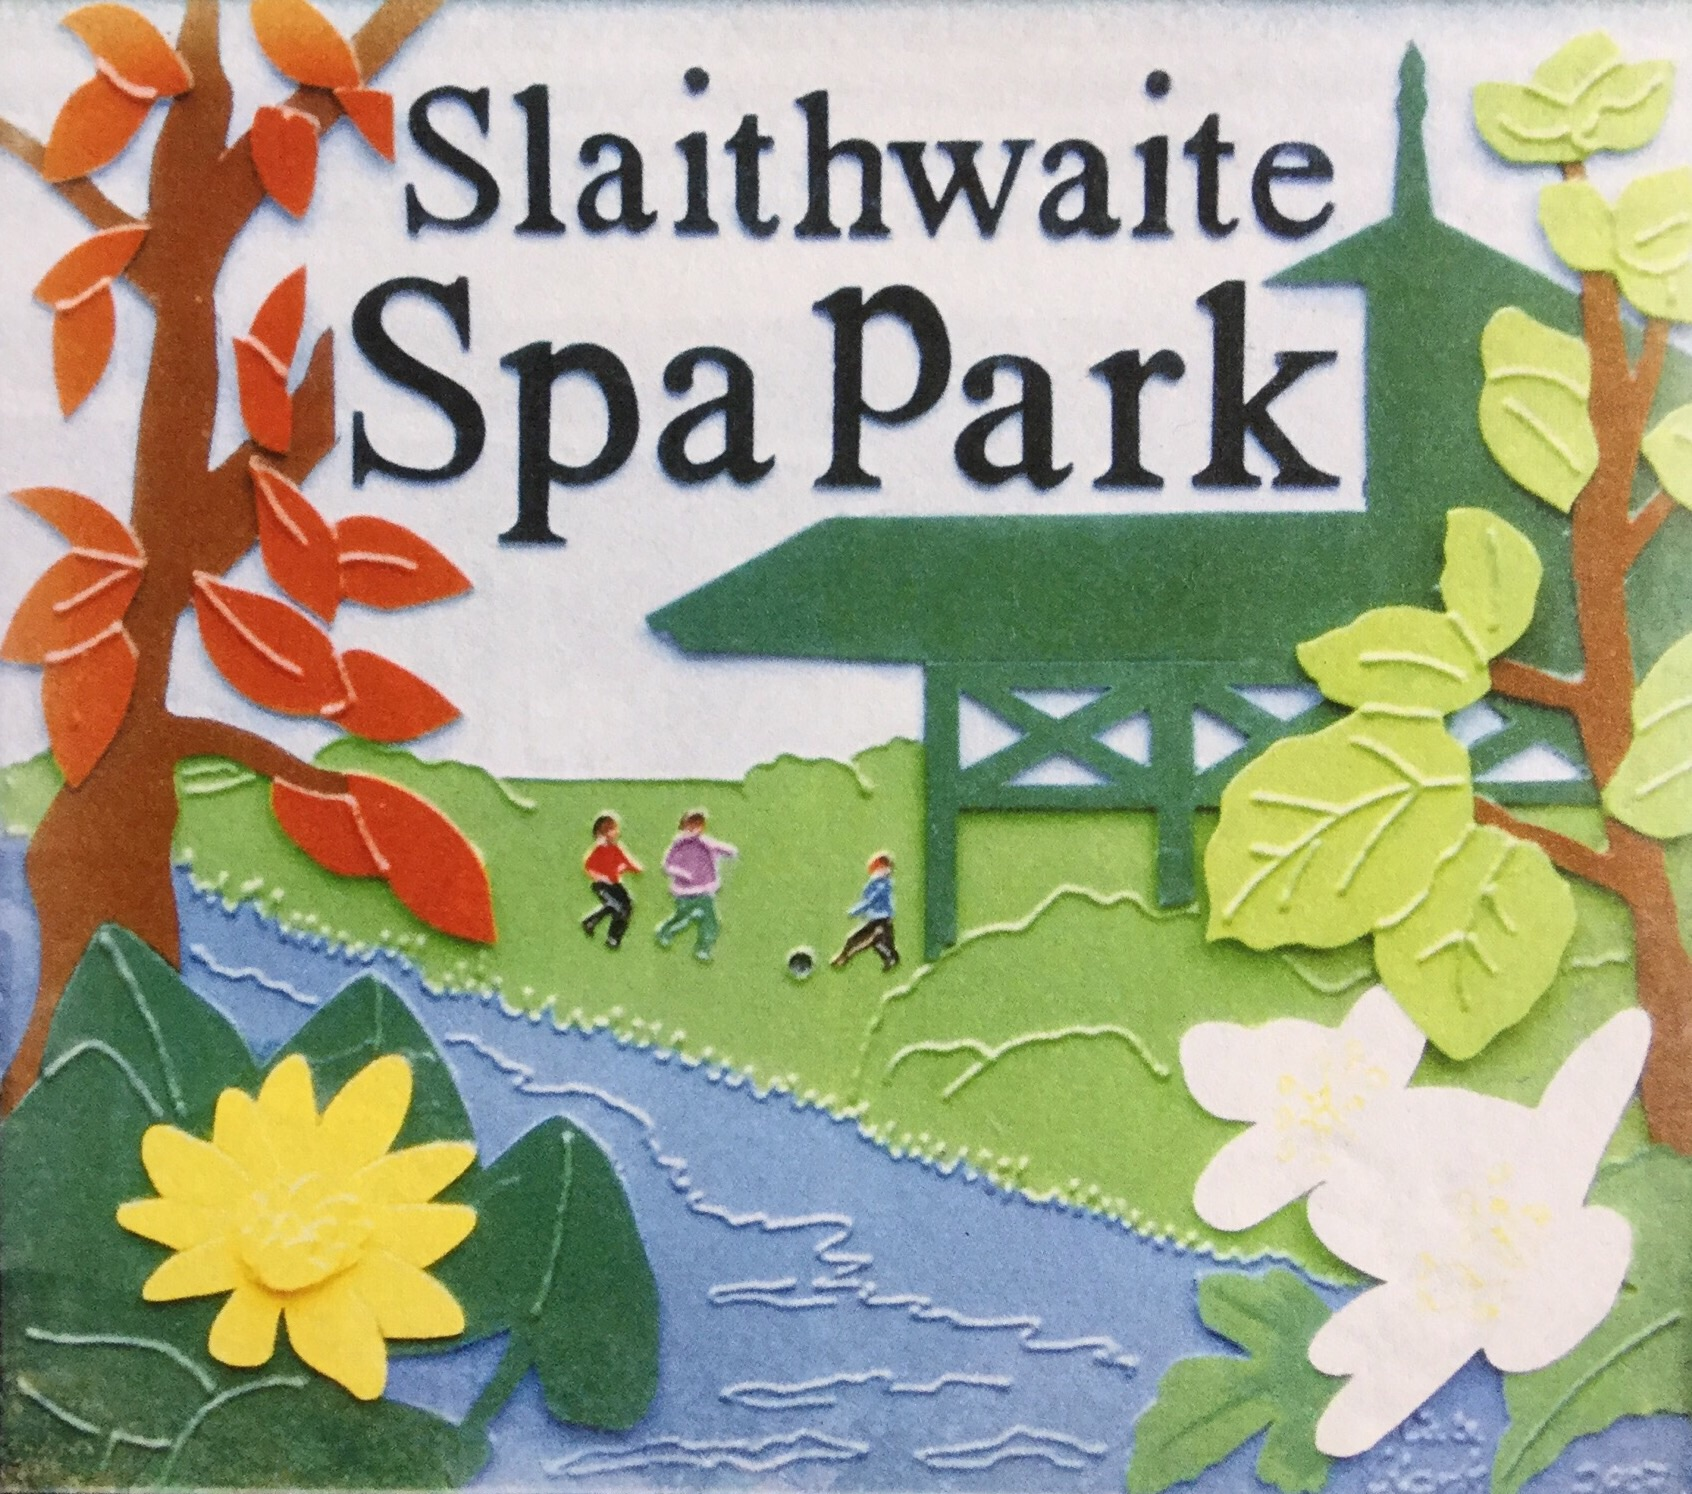 Friends of Slaithwaite Spa